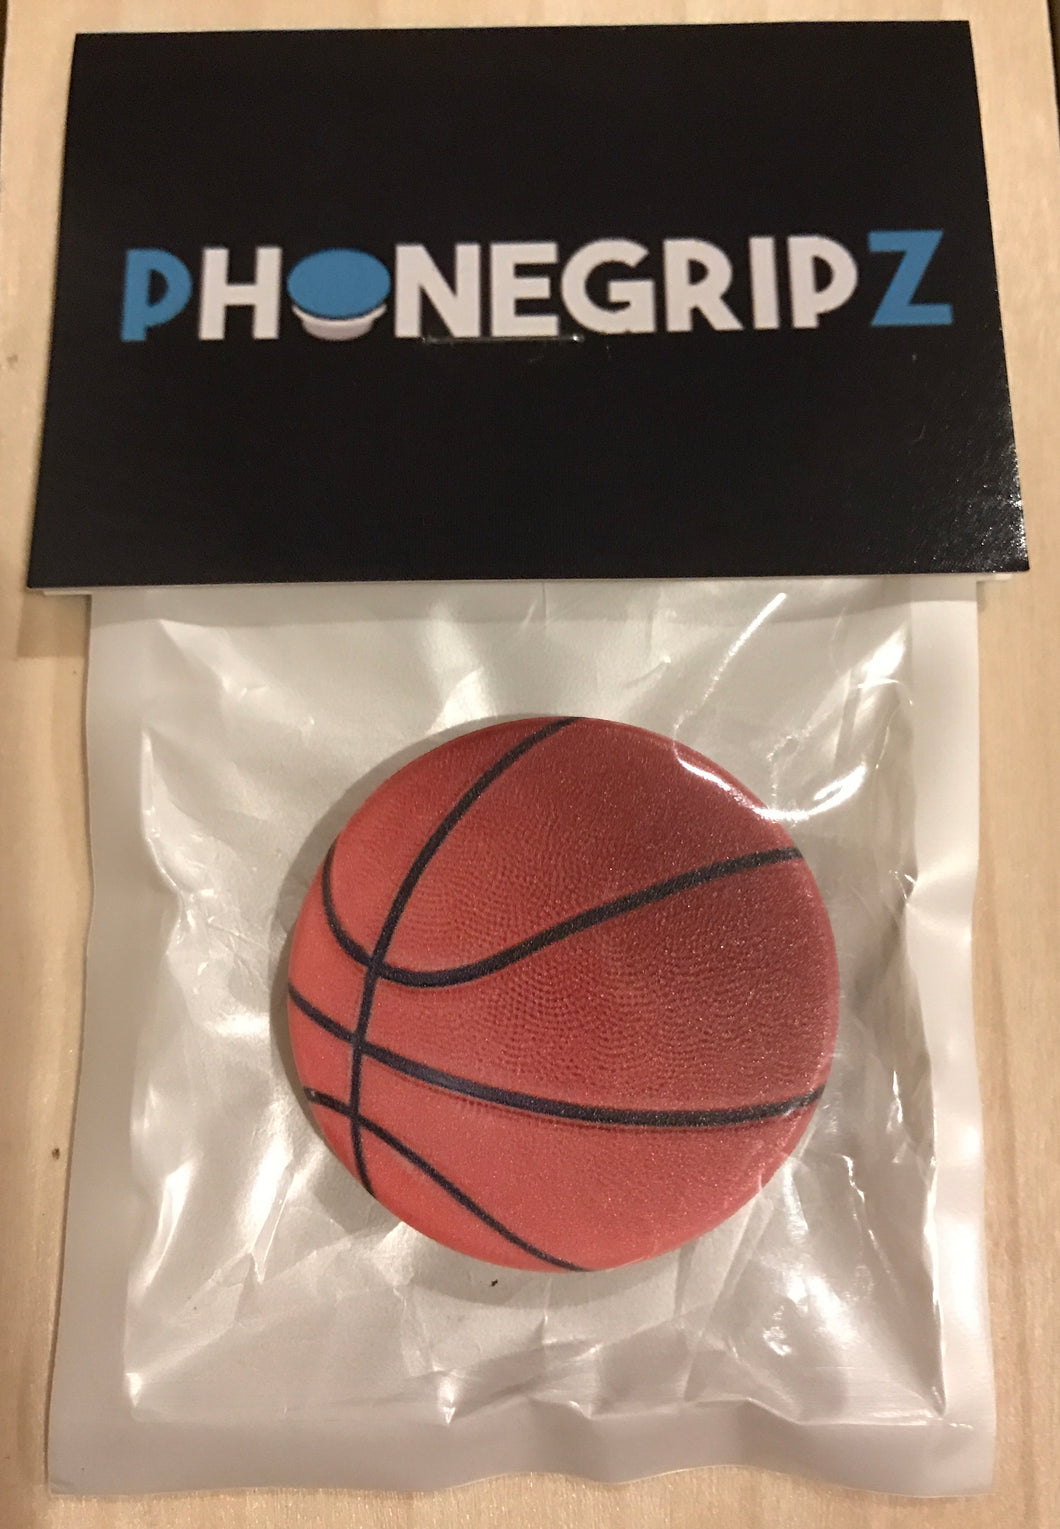 Basketball Universal Phone Grip Pop Out PhoneGripz